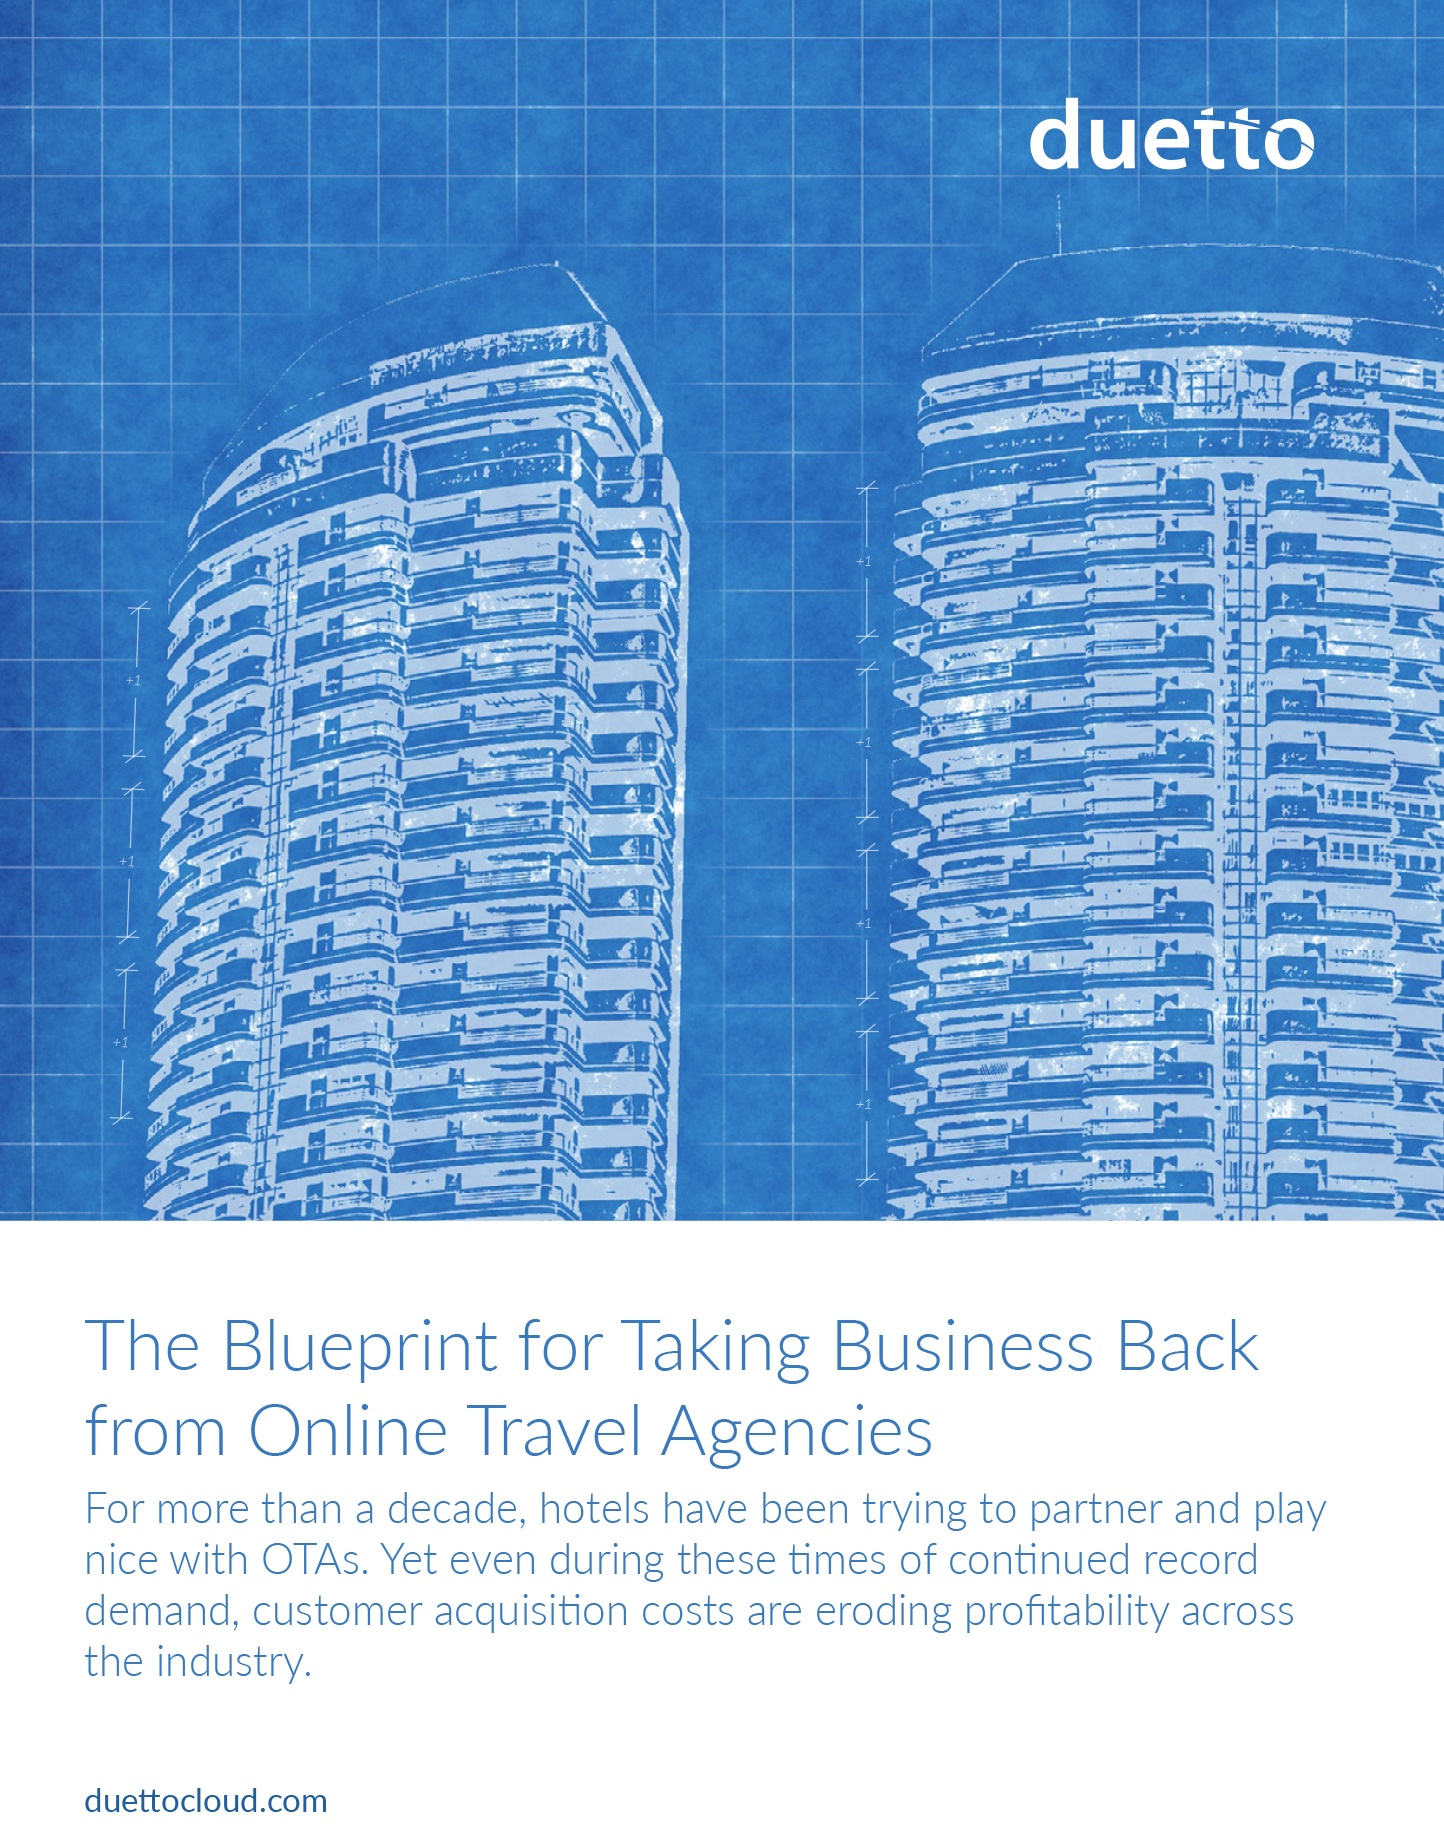 The blueprint for taking business back from otas duetto the blueprint for taking business back from otas 1g malvernweather Images